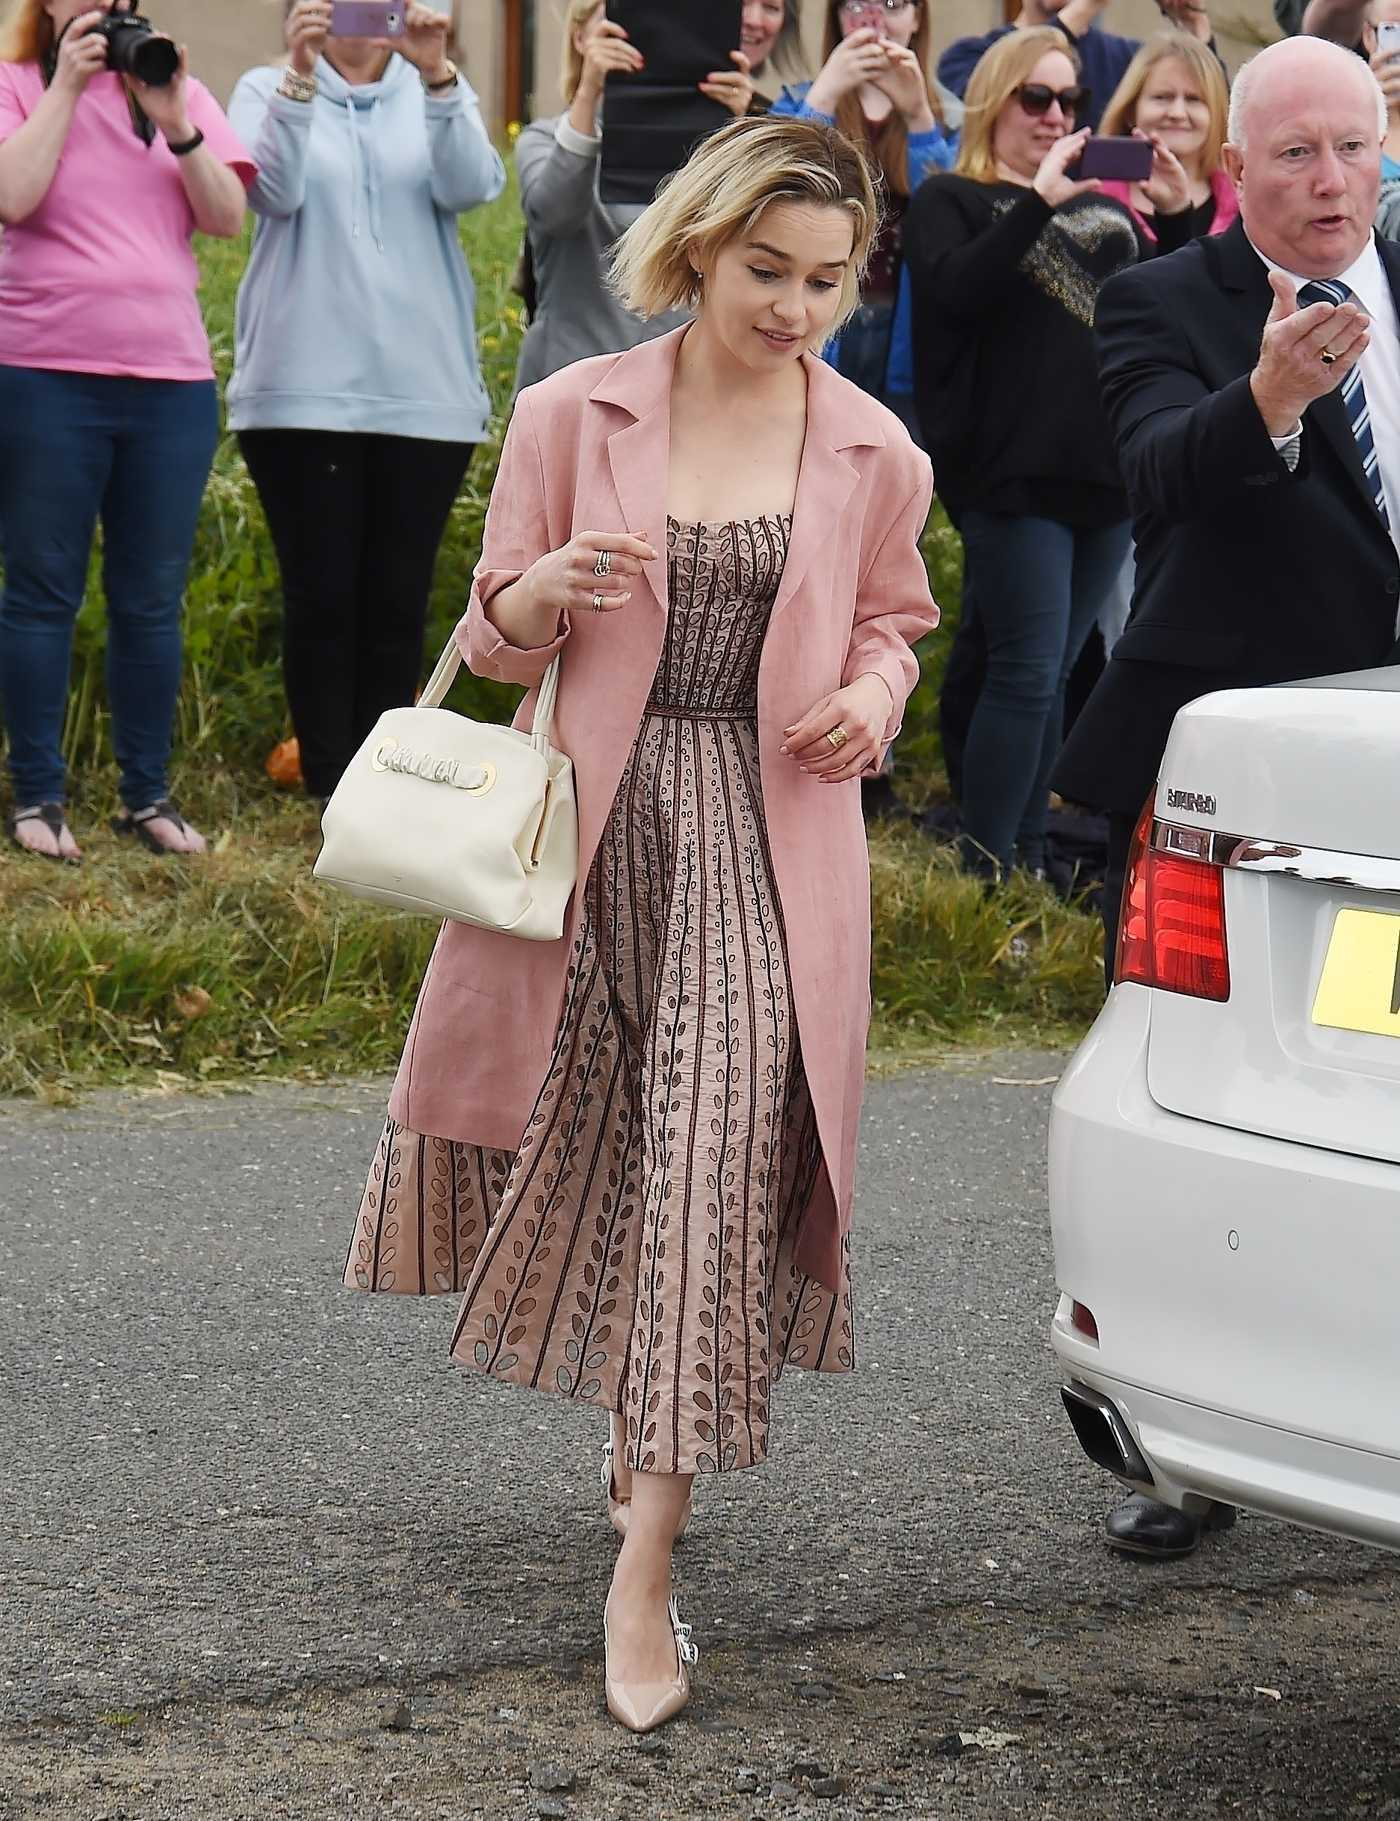 Emilia Clarke Arrives at Kit Harington and Rose Leslie Wedding in Scotland 06/23/2018